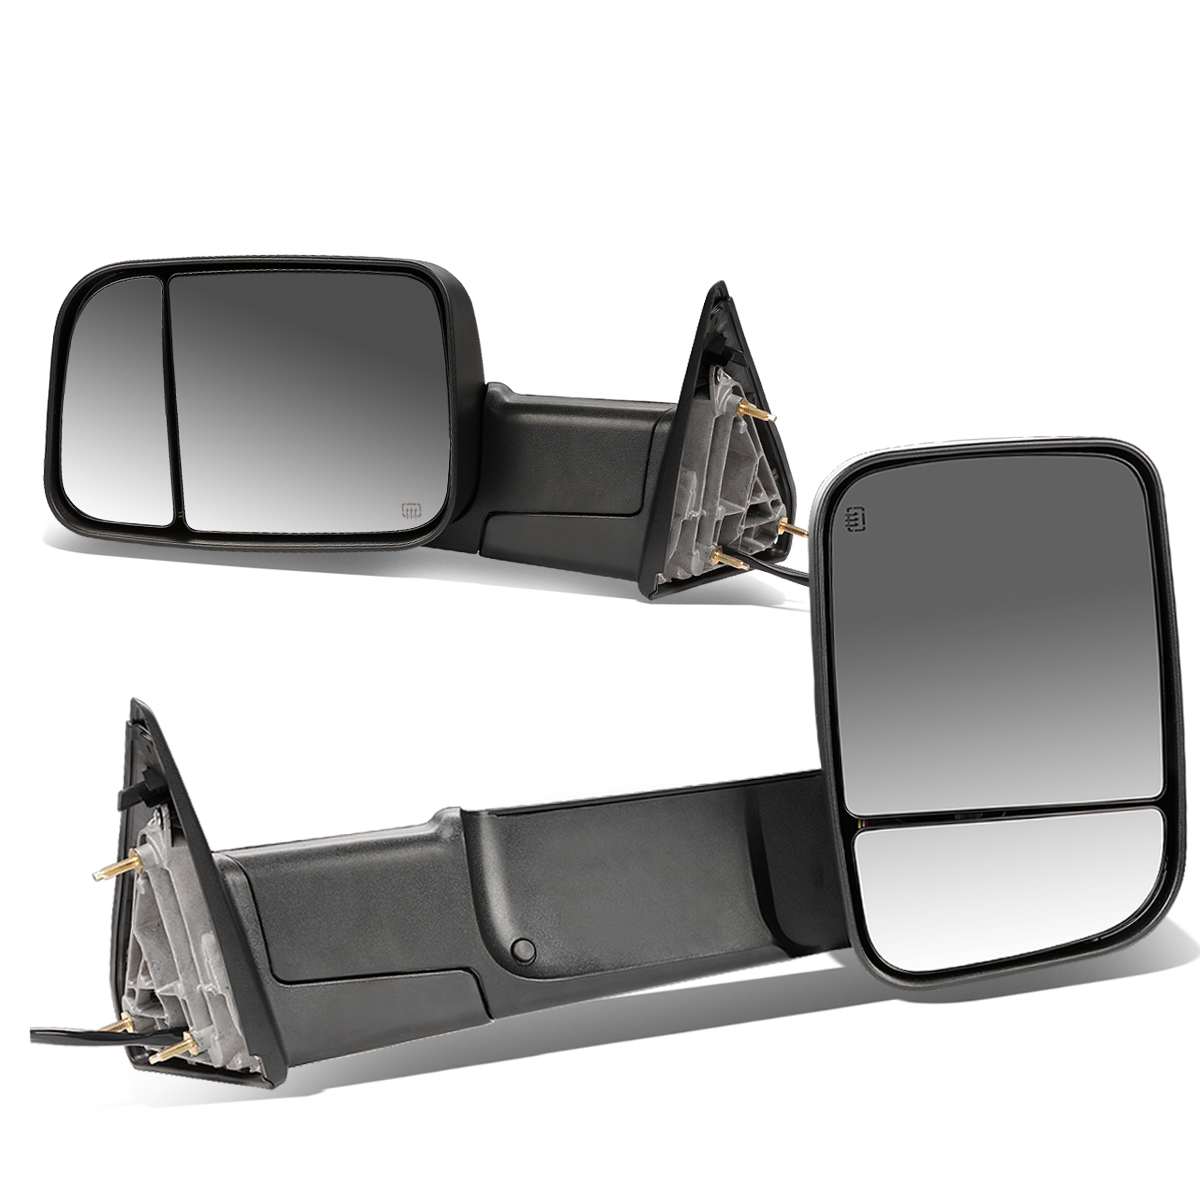 For 09-16 Ram 1500 / 2500 / 3500 / 4500 / 5500 Pair of Black Powered + Heated Glass + Foldable Side Towing Mirrors 14 15